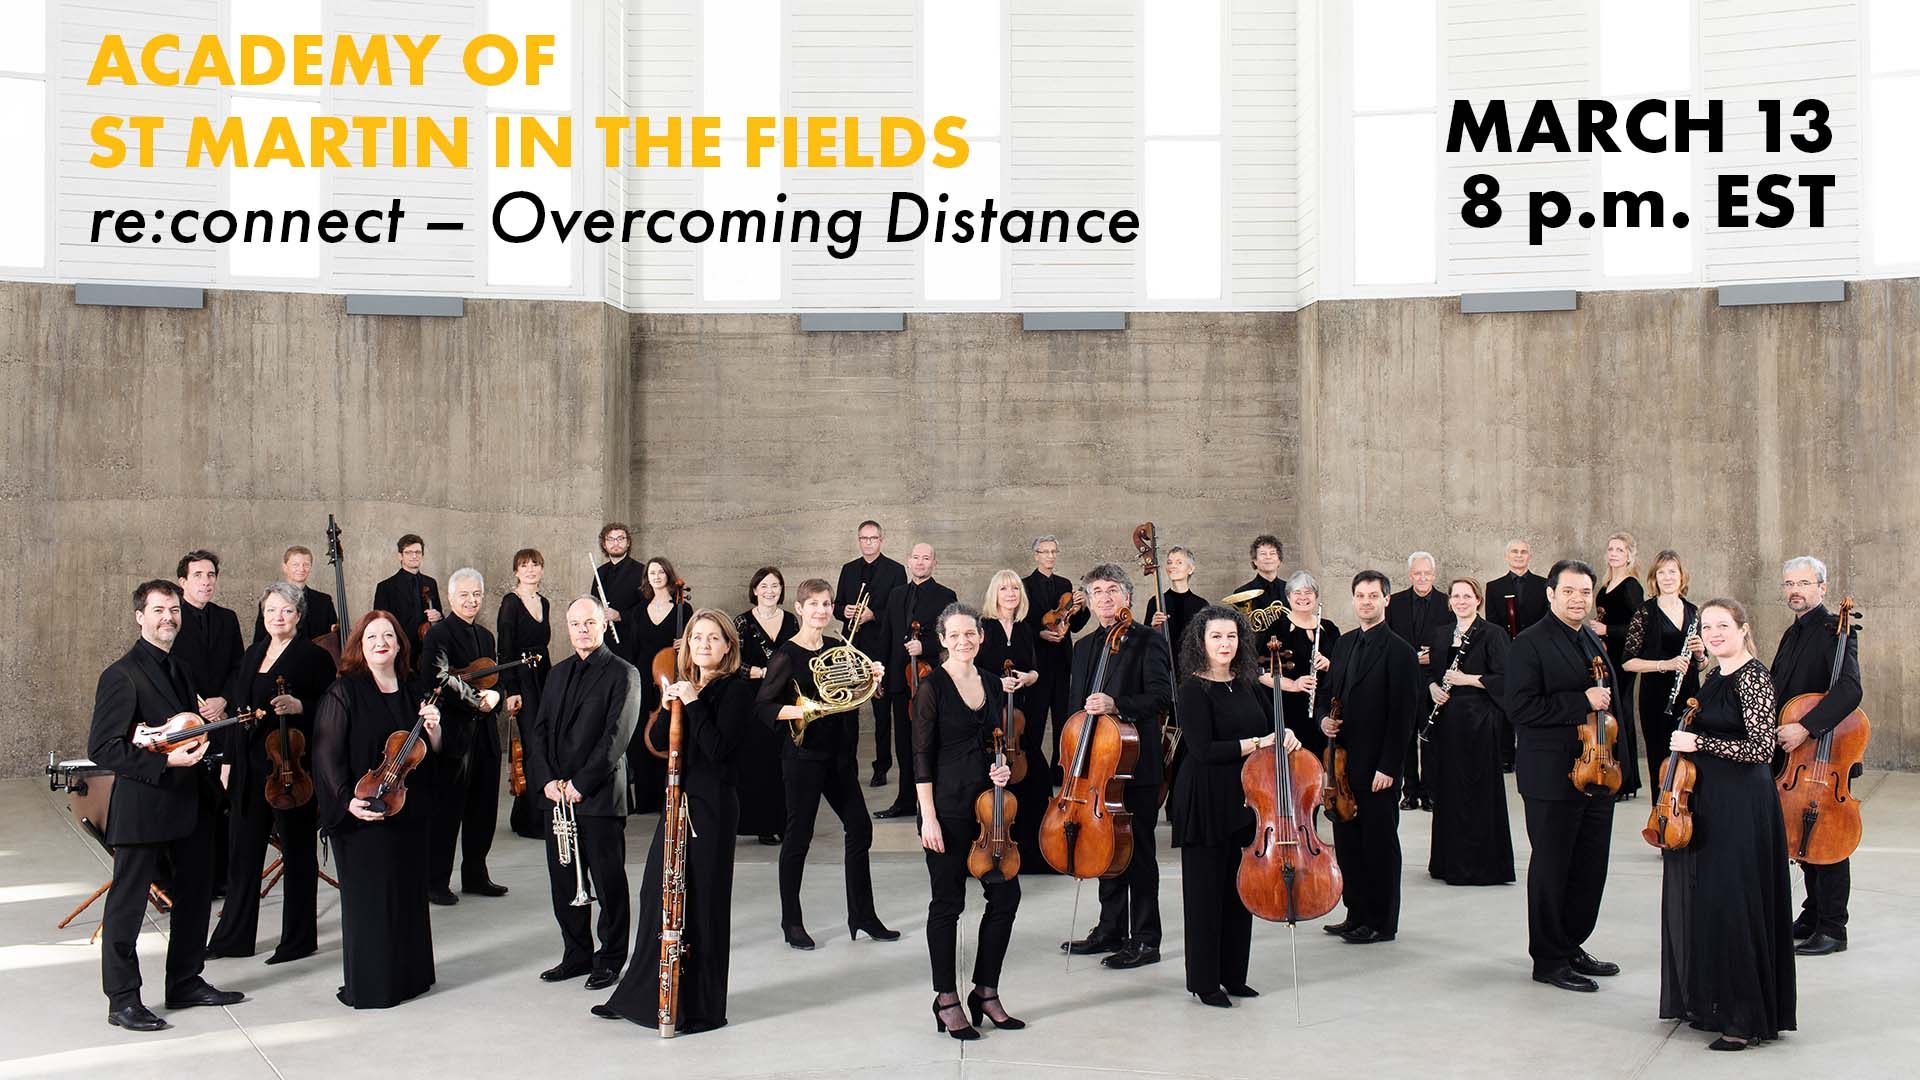 Academy of St Martin in the Fields, re:connect - Overcoming Distance